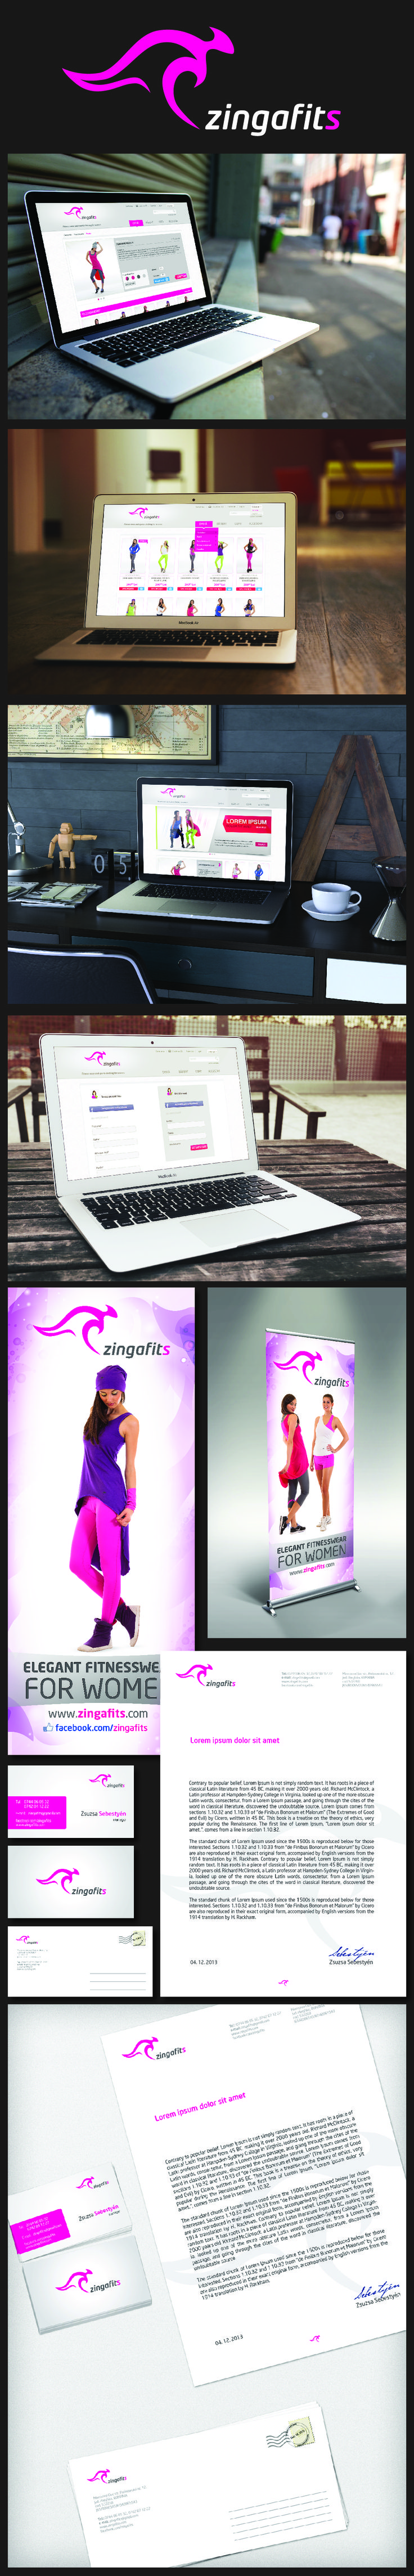 Logo - Business Card - Flyer - Rollup - Header - Webshop design - ZingaFitS Sportswear Company